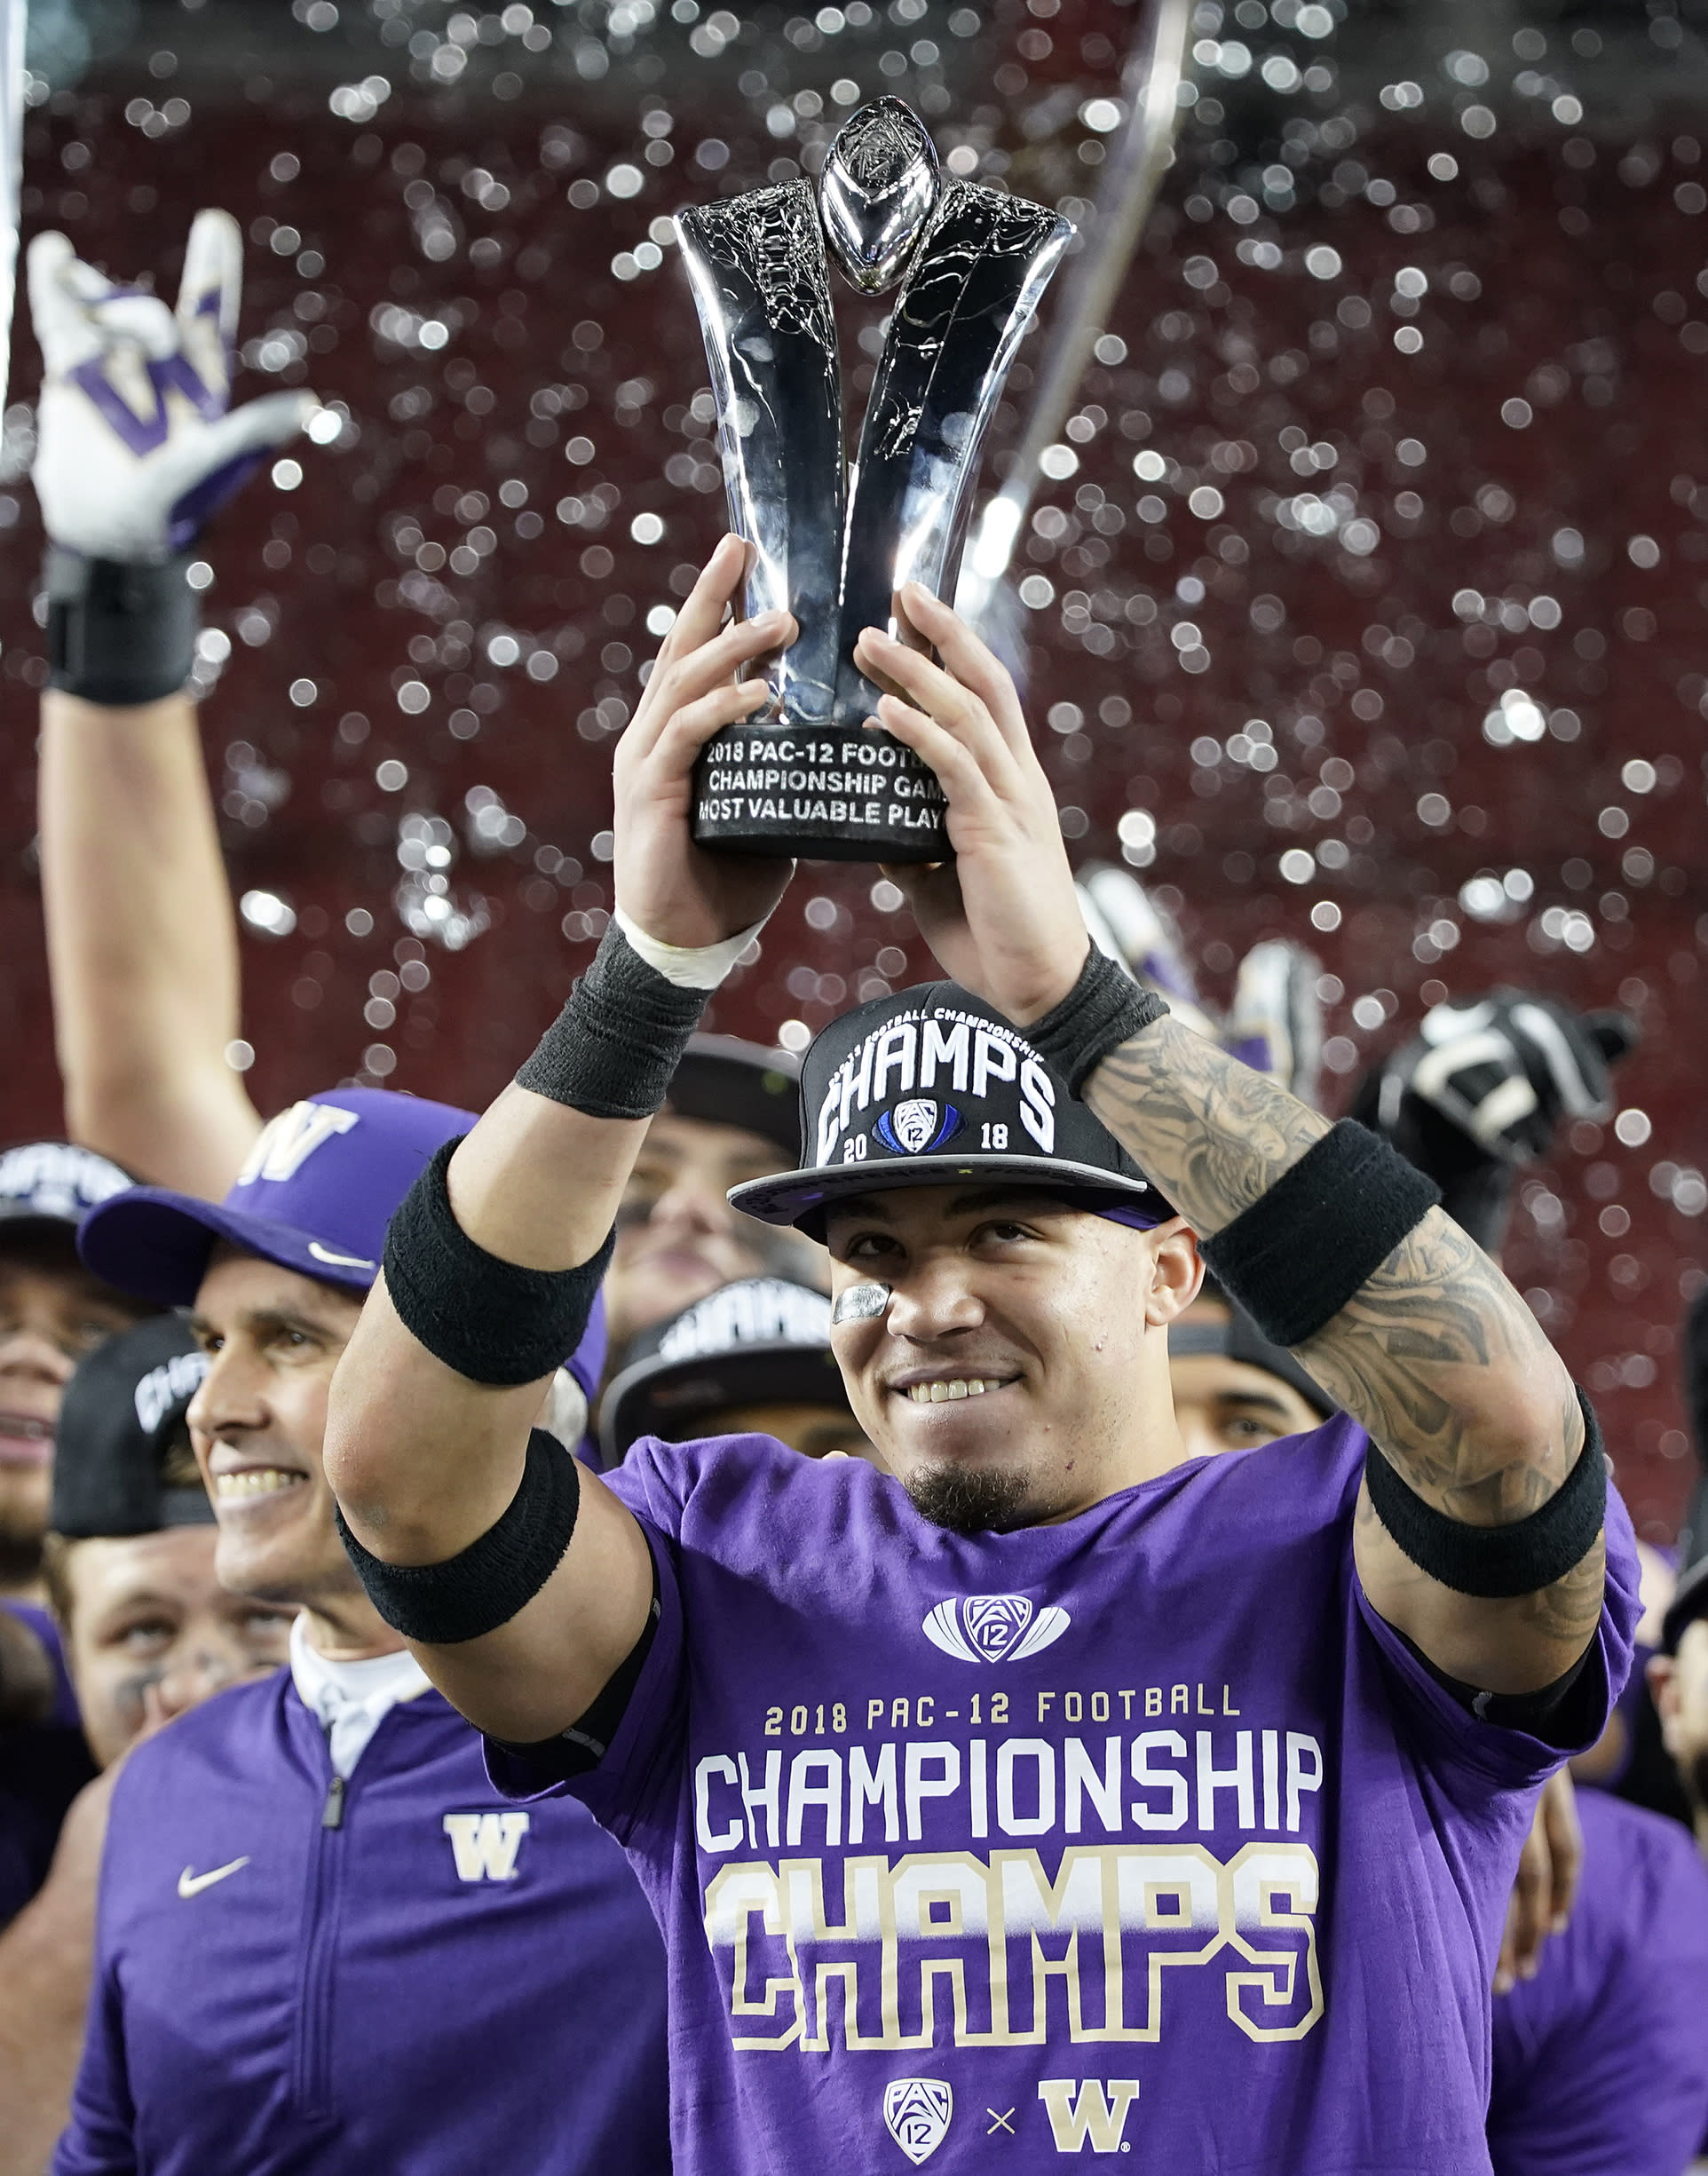 Washington defensive back Byron Murphy celebrates after Washington defeated Utah 10-3 in the Pac-12 Conference championship NCAA college football game in Santa Clara, Calif., Friday, Nov. 30, 2018. (AP Photo/Tony Avelar)